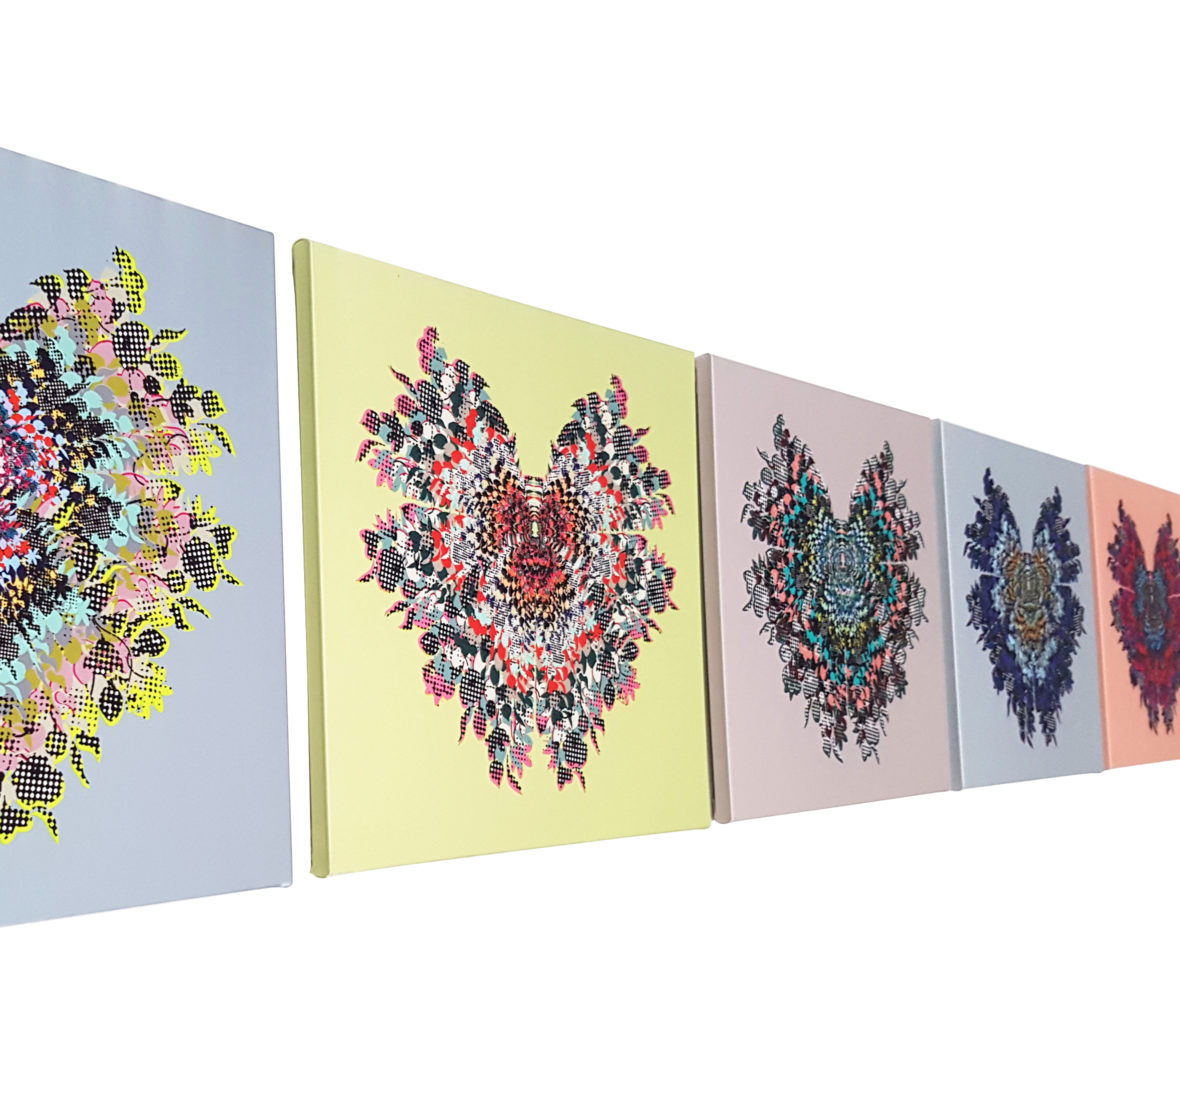 Butterfly, Small 3,4,5,6 & 7